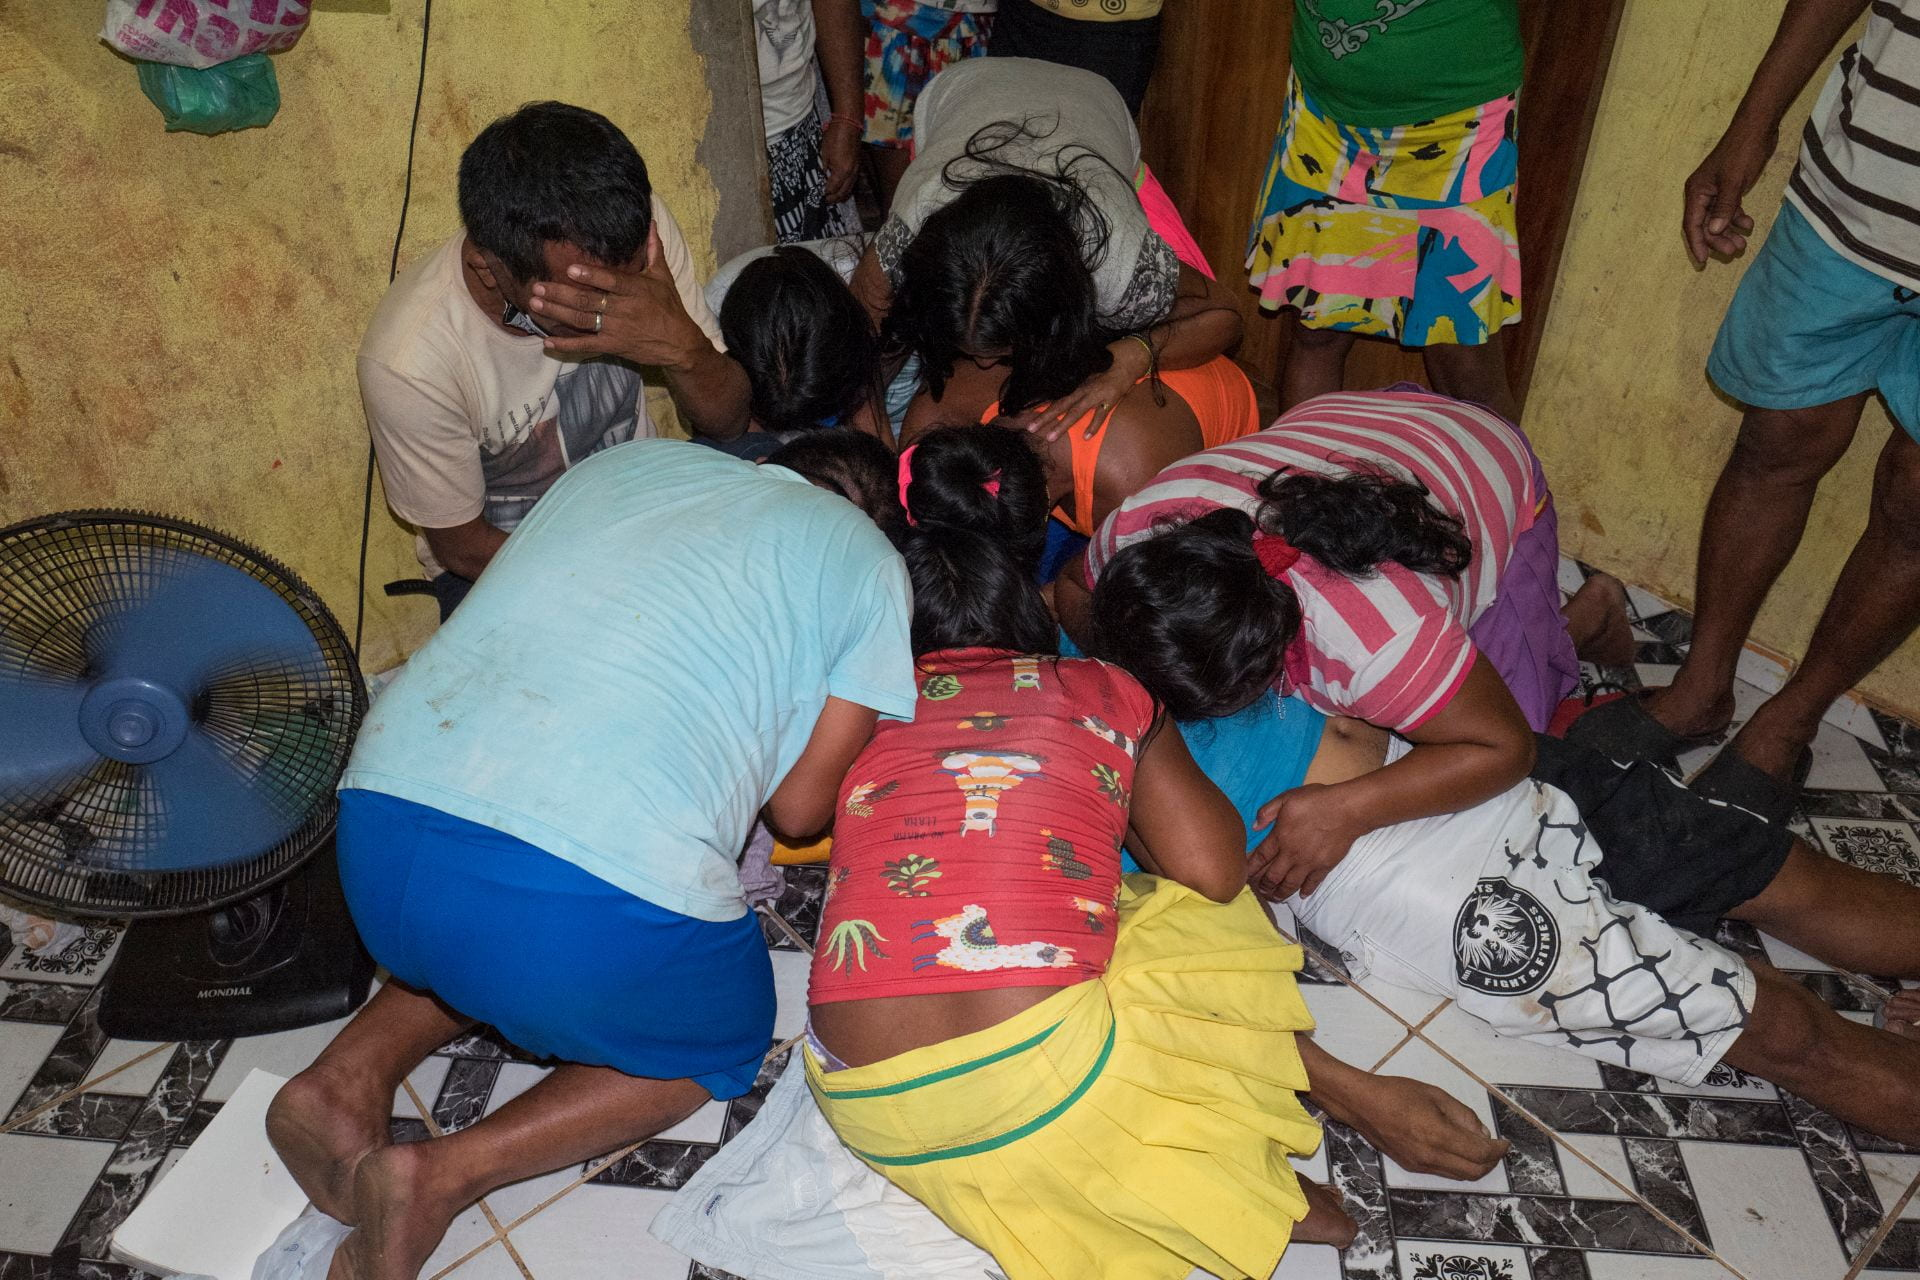 Relatives mourn the death of José Alirio, 45, who died of Covid-19 a few hours ago in a room of a community of about 150 Warao Indigenous refugees in Outeiro, a district of Belem do Pará, Brazilian Amazon. This is the fifht death by COVID19 withing the Warao people of Belém in the past month, including three children. More than xxx indigenous died during the Coronavirus outbreak in Brazil.